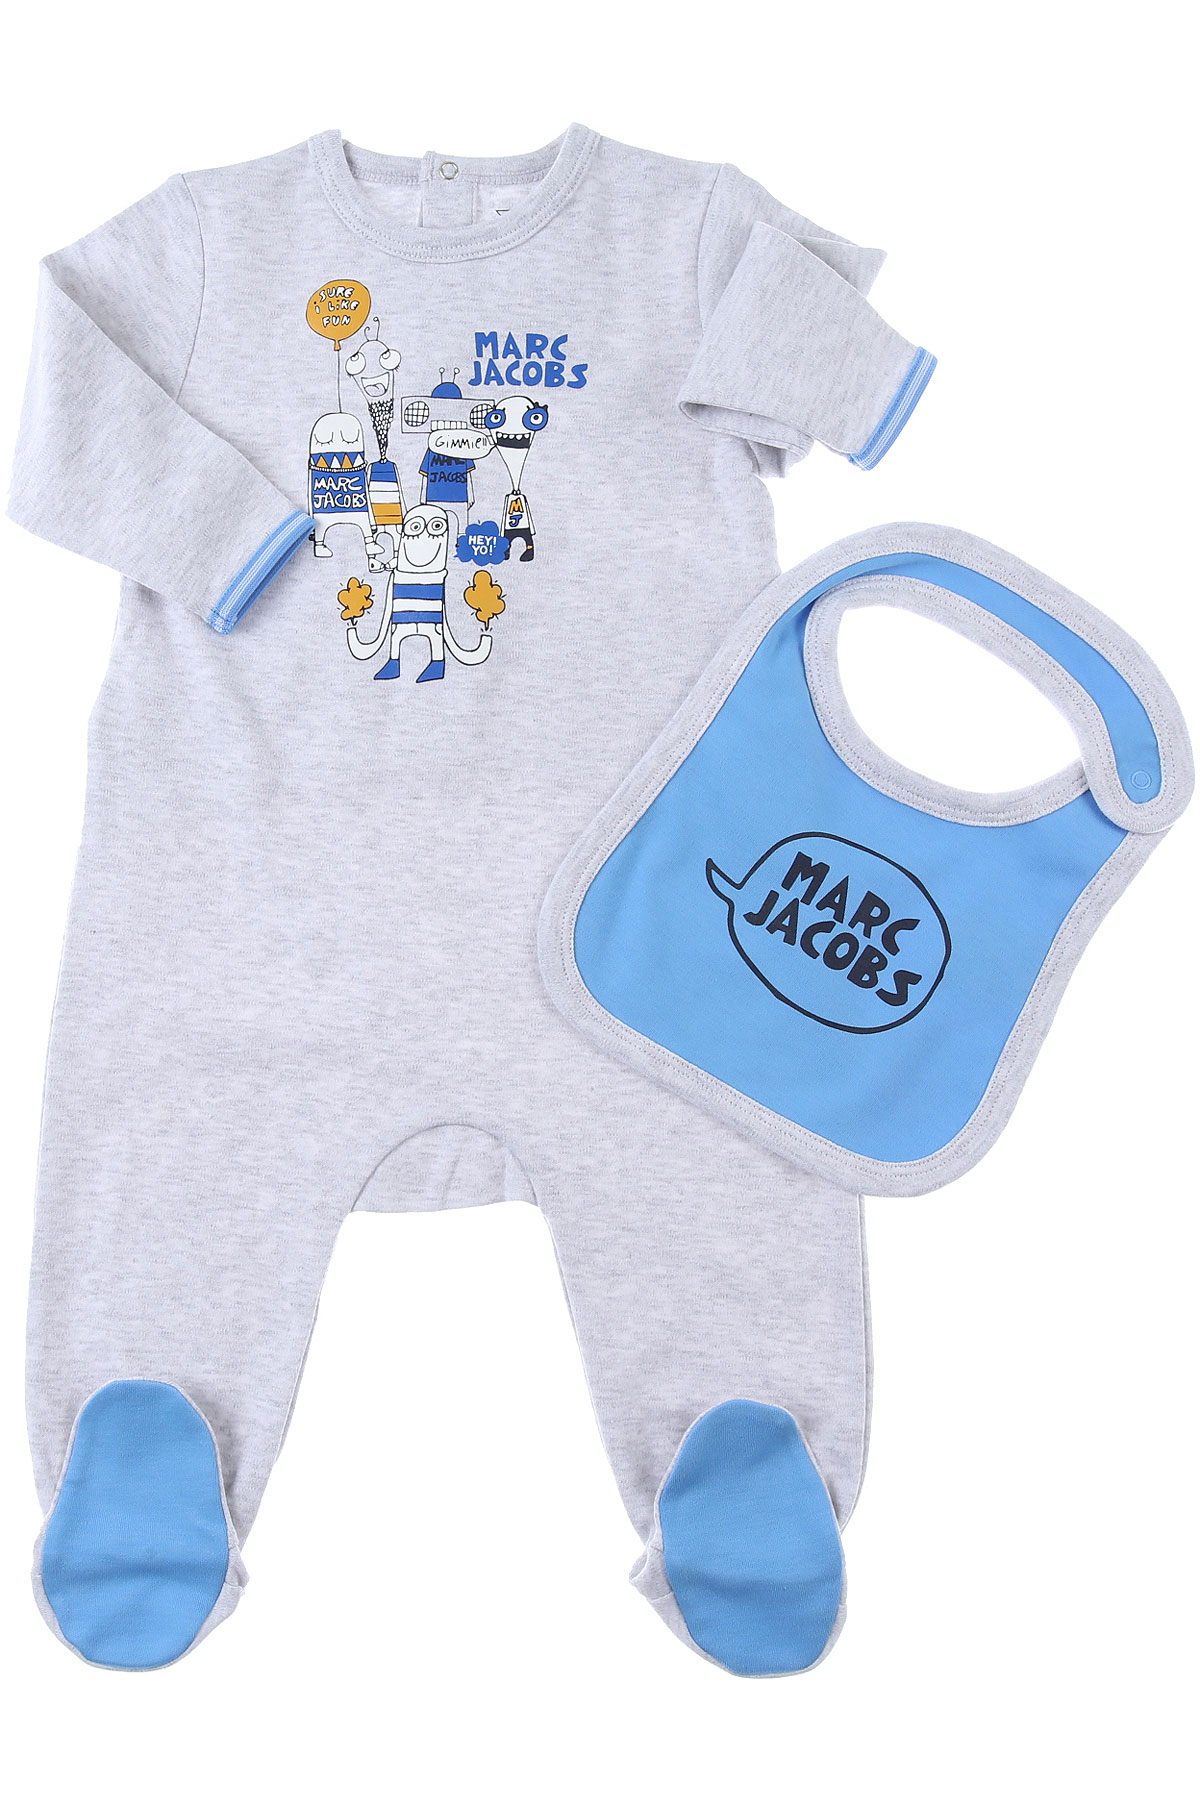 Marc Jacobs Baby Sets for Boys On Sale, Grey, Cotton, 2019, 1M 3M 6M